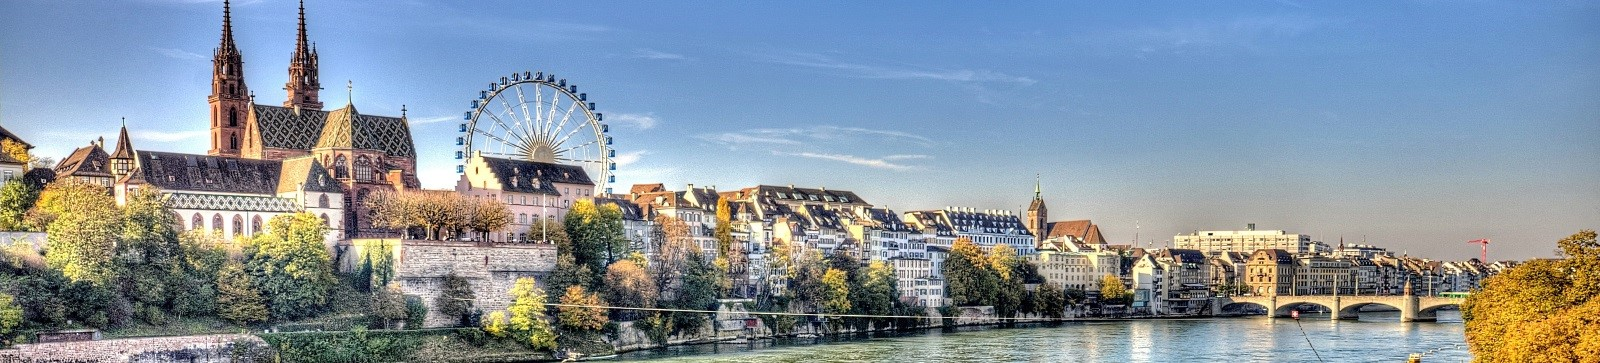 Seminarhotels in Basel, Schweiz, Switzerland